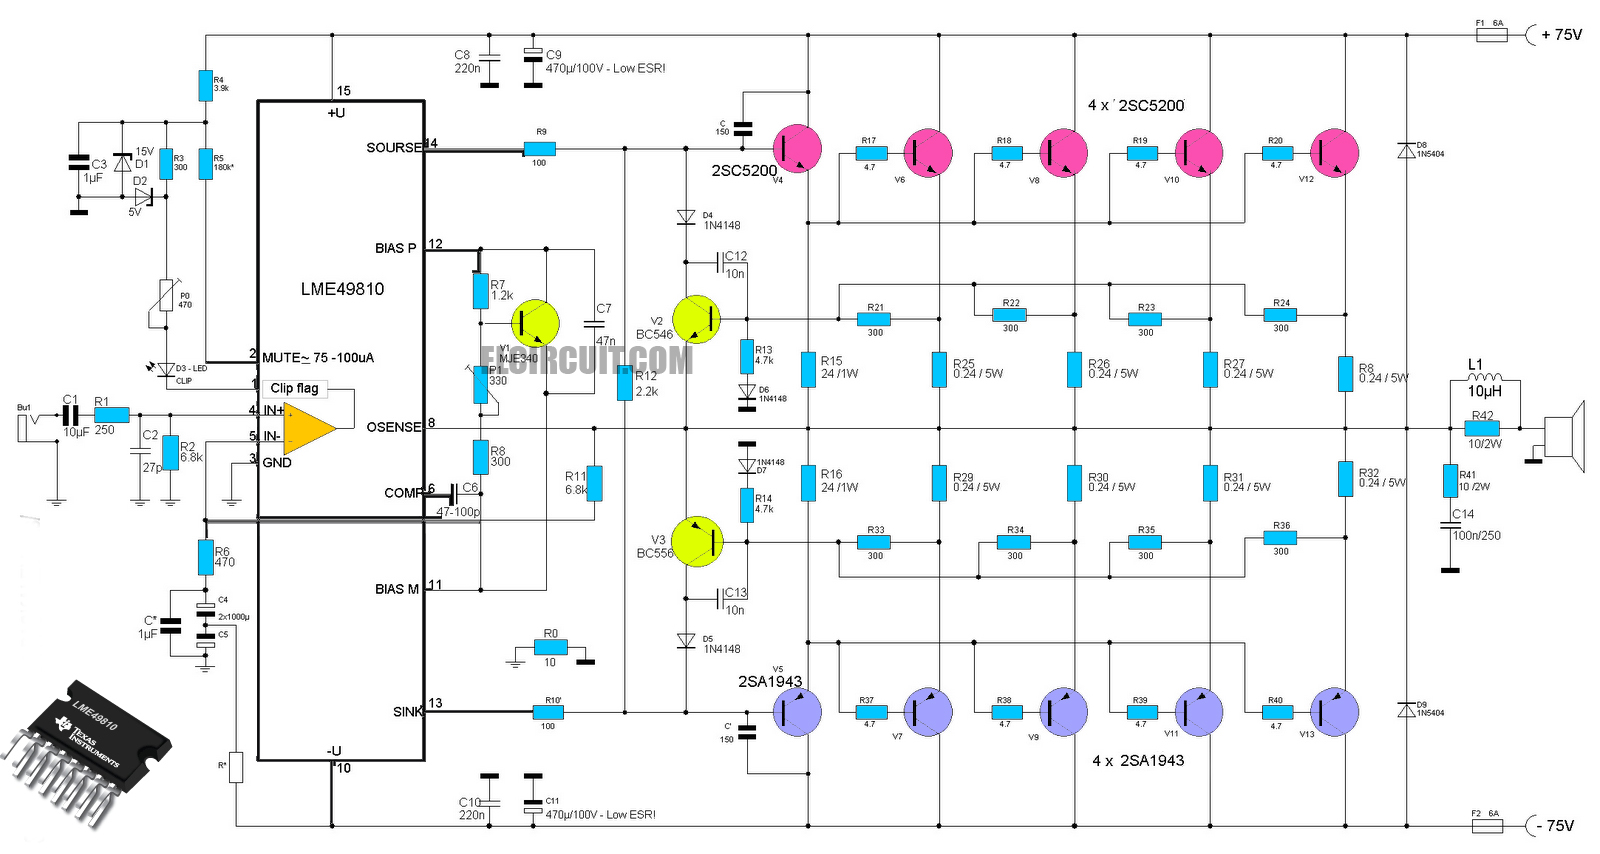 high end power amplifier lme49810 2sc5200 2sa1943 circuit diagram [ 1600 x 854 Pixel ]